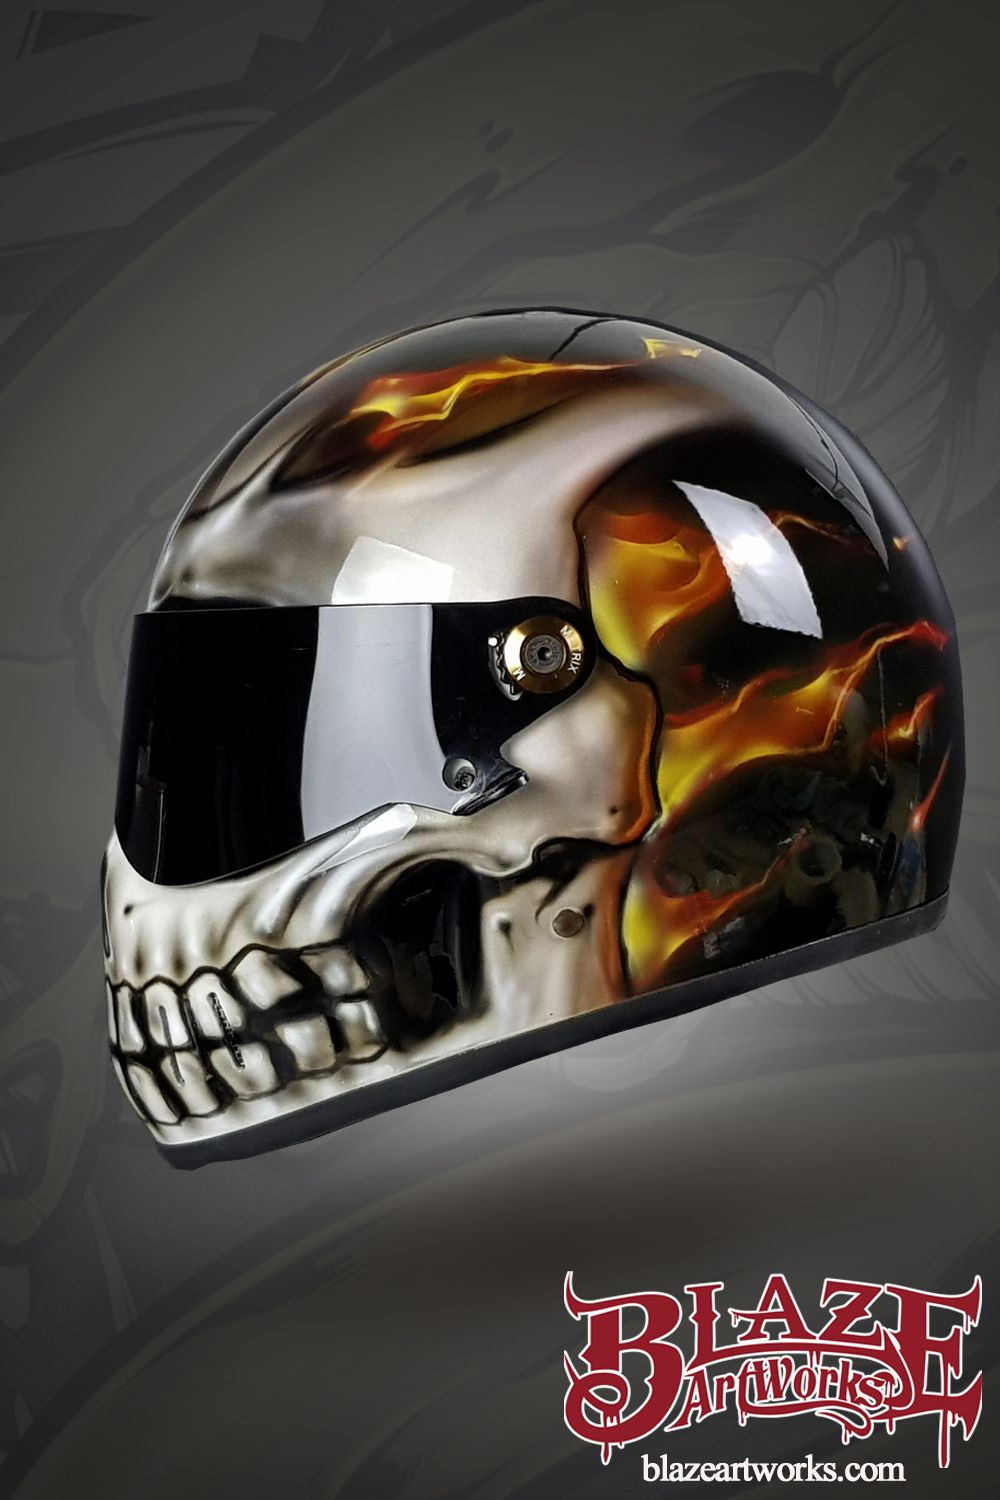 Cool smiey face grinster custom motorcycle helmet